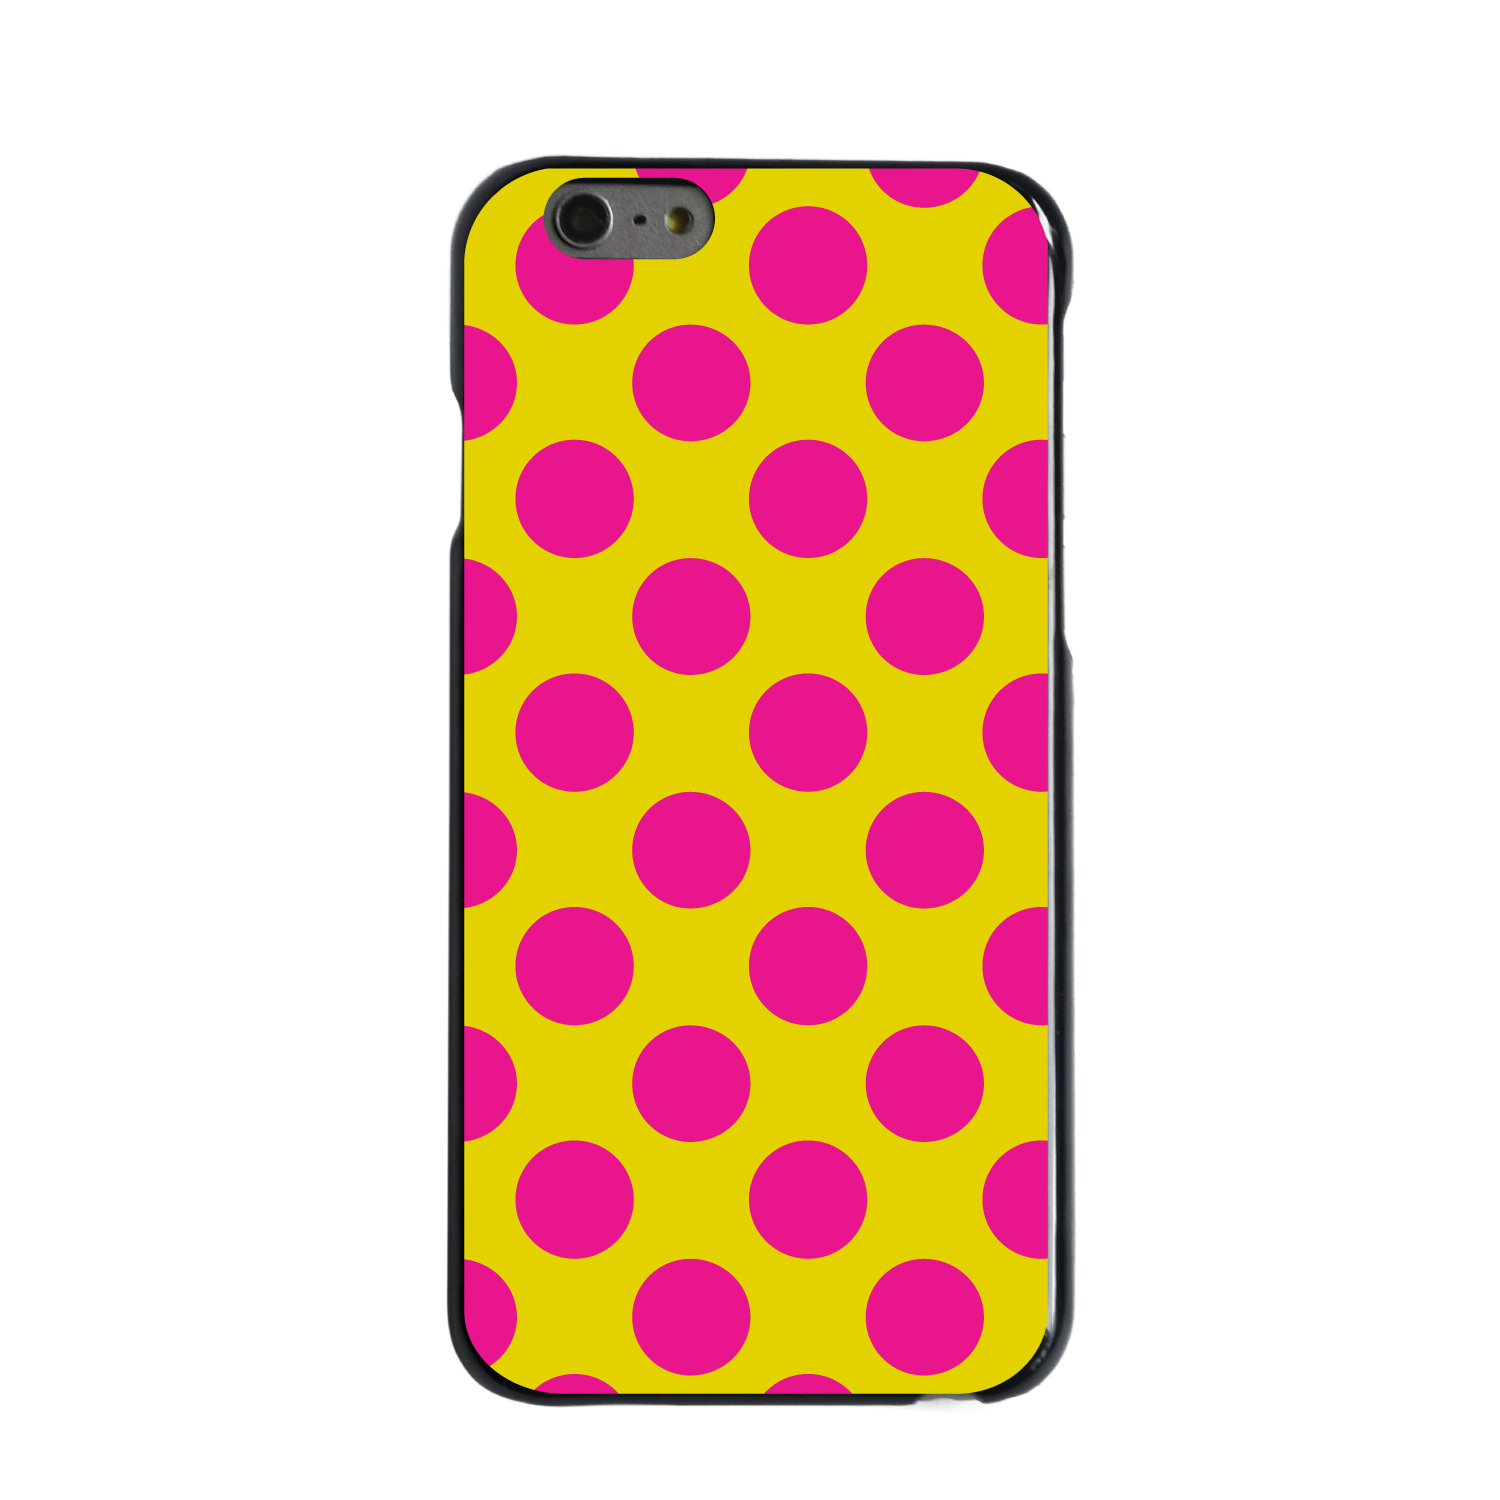 """CUSTOM Black Hard Plastic Snap-On Case for Apple iPhone 6 / 6S (4.7"""" Screen) - Yellow Hot Pink Polka Dots"""